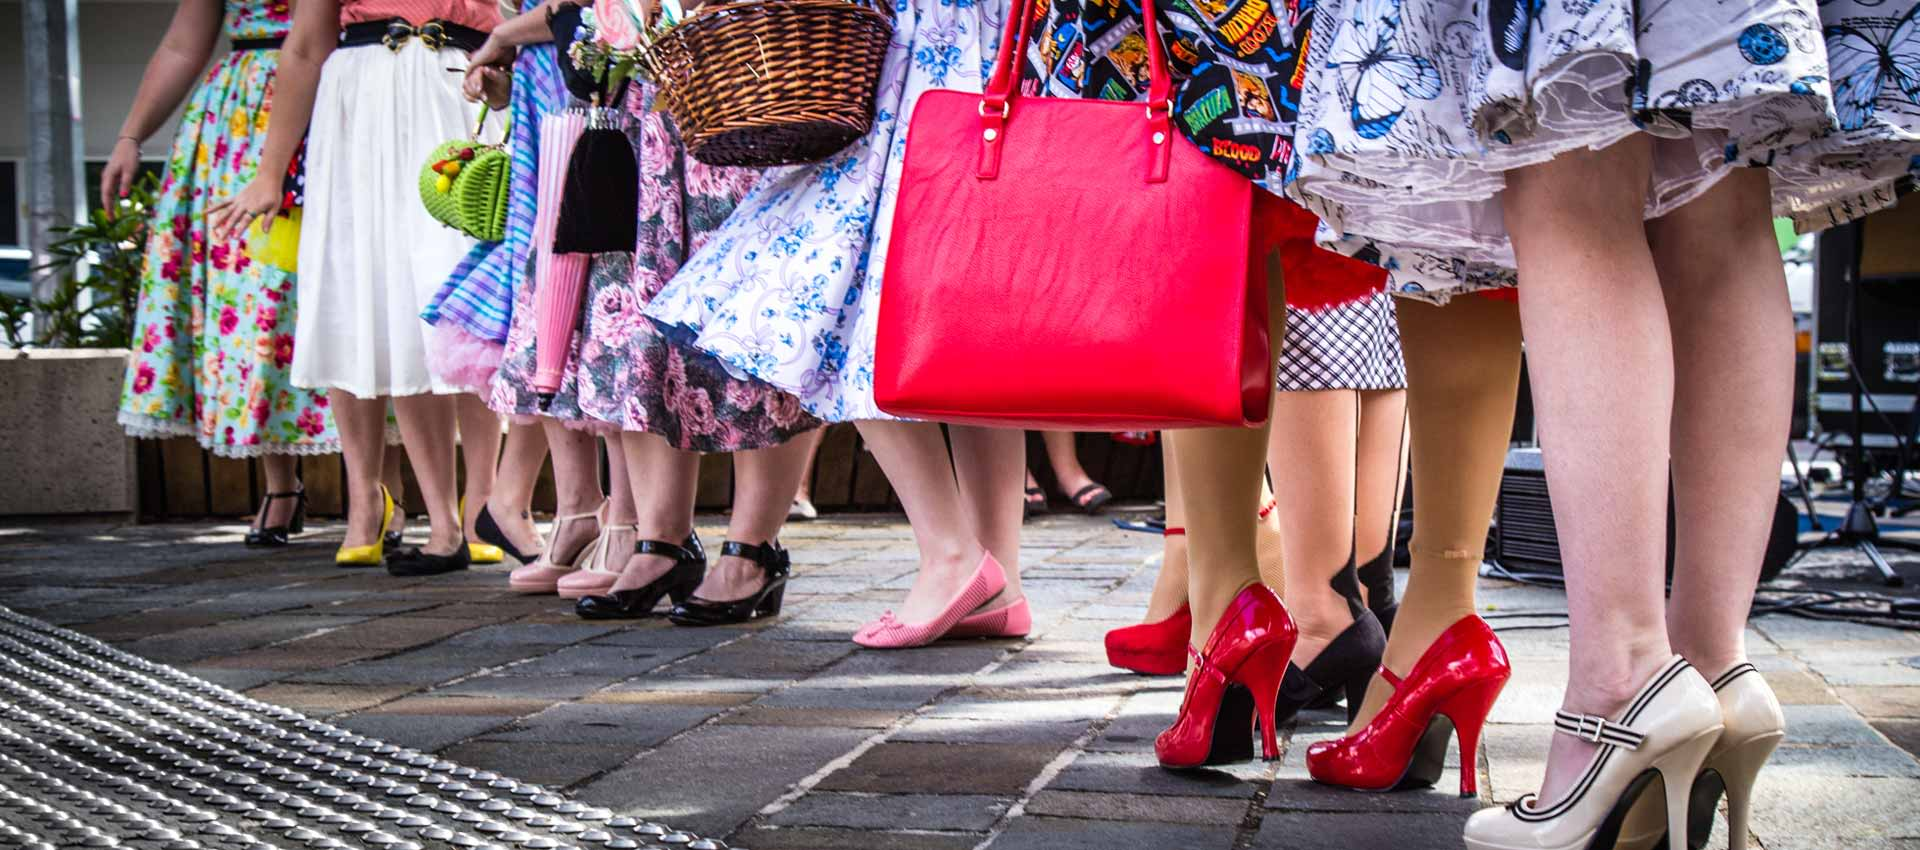 Discover Nambour's vintage and retro trail